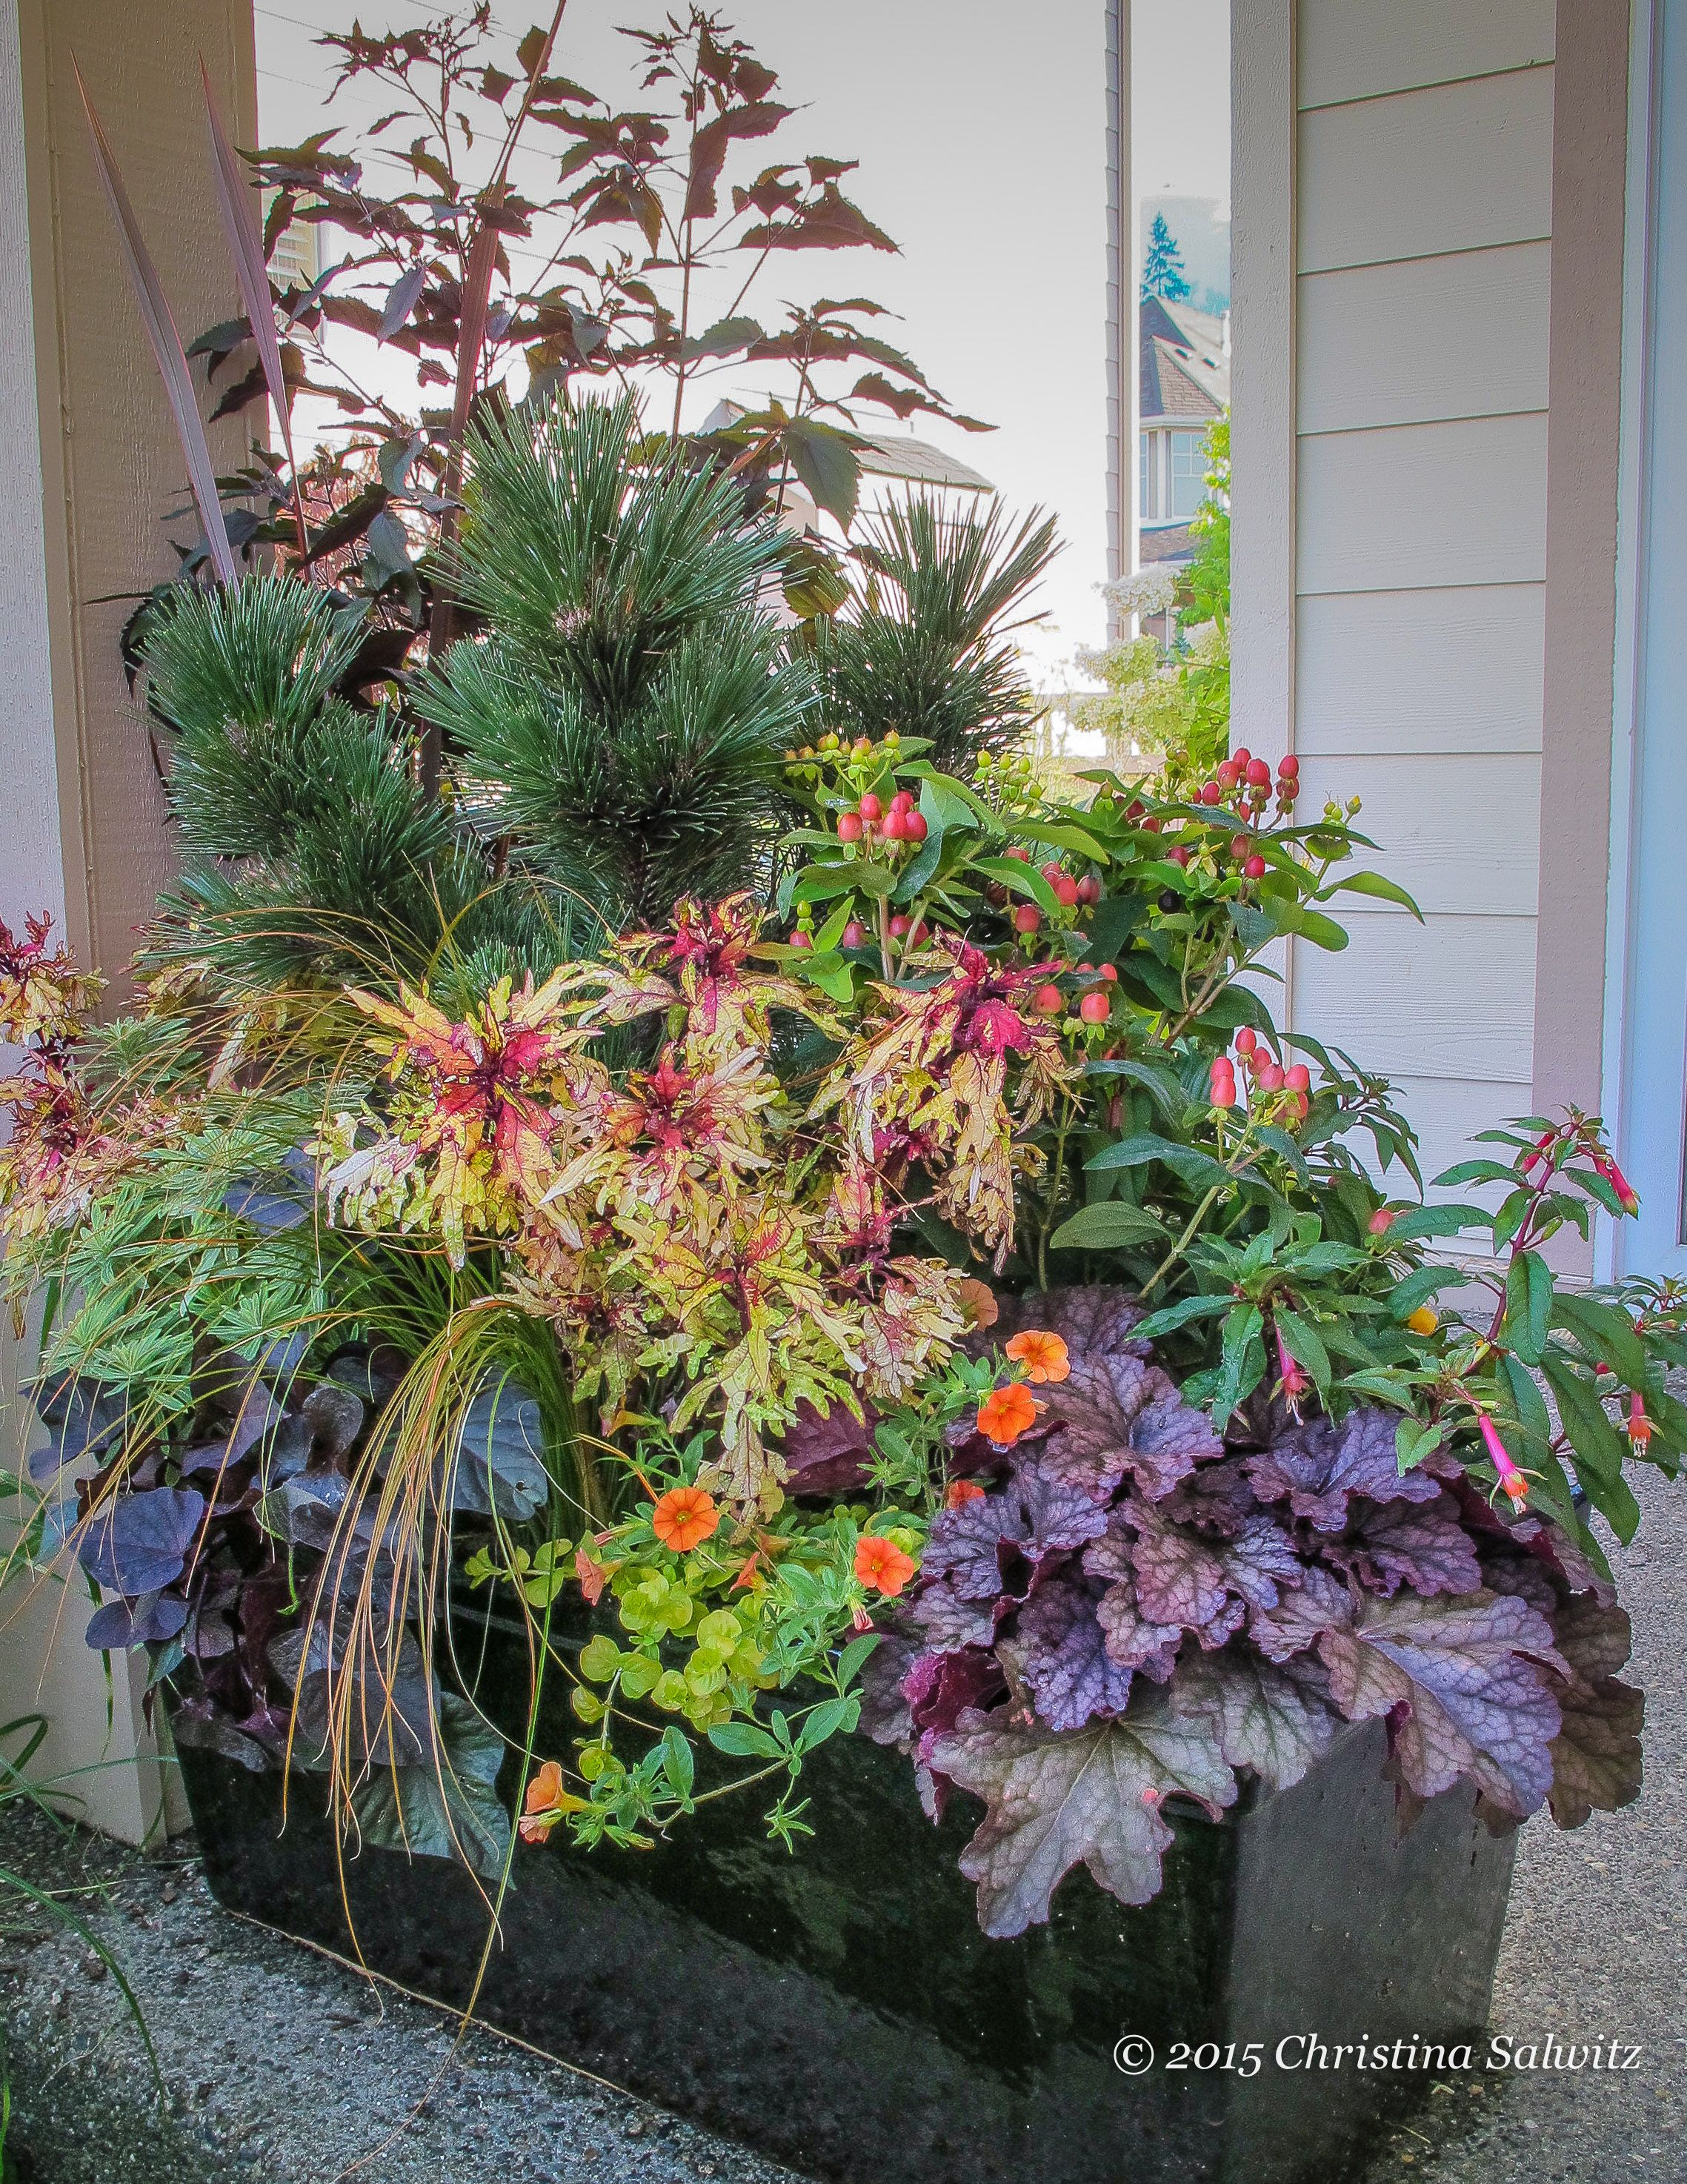 A Container Garden Designed To Feature The Bounty Of Fall Plants